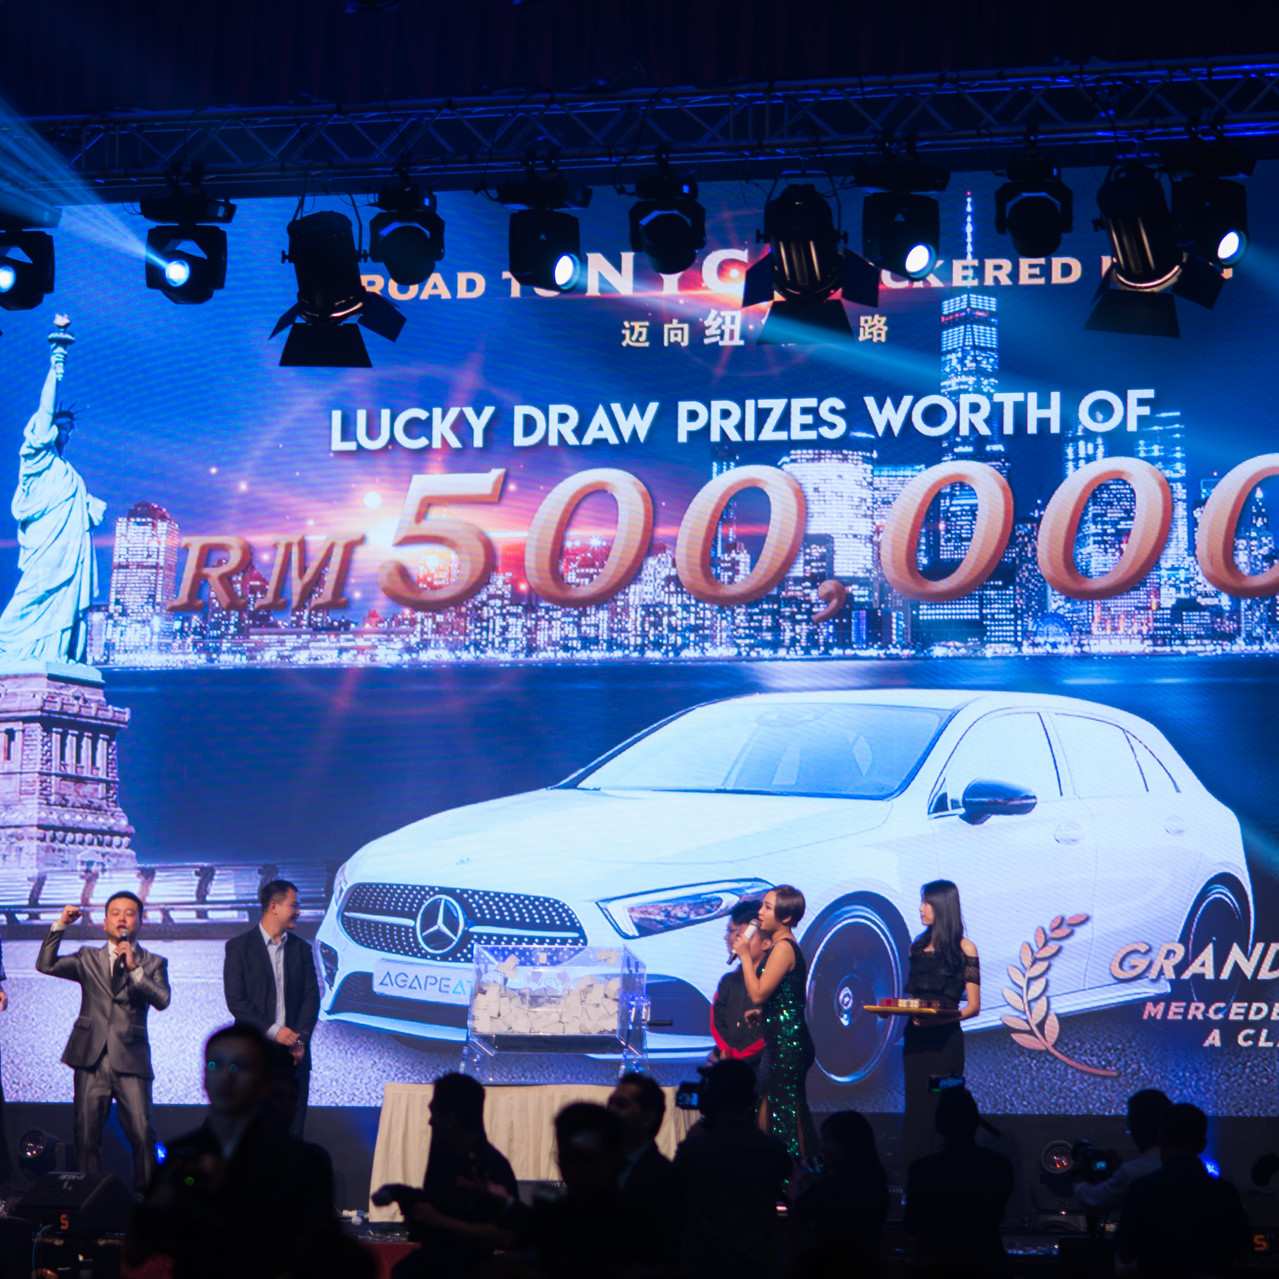 The lucky draw at the Grand Reveal event